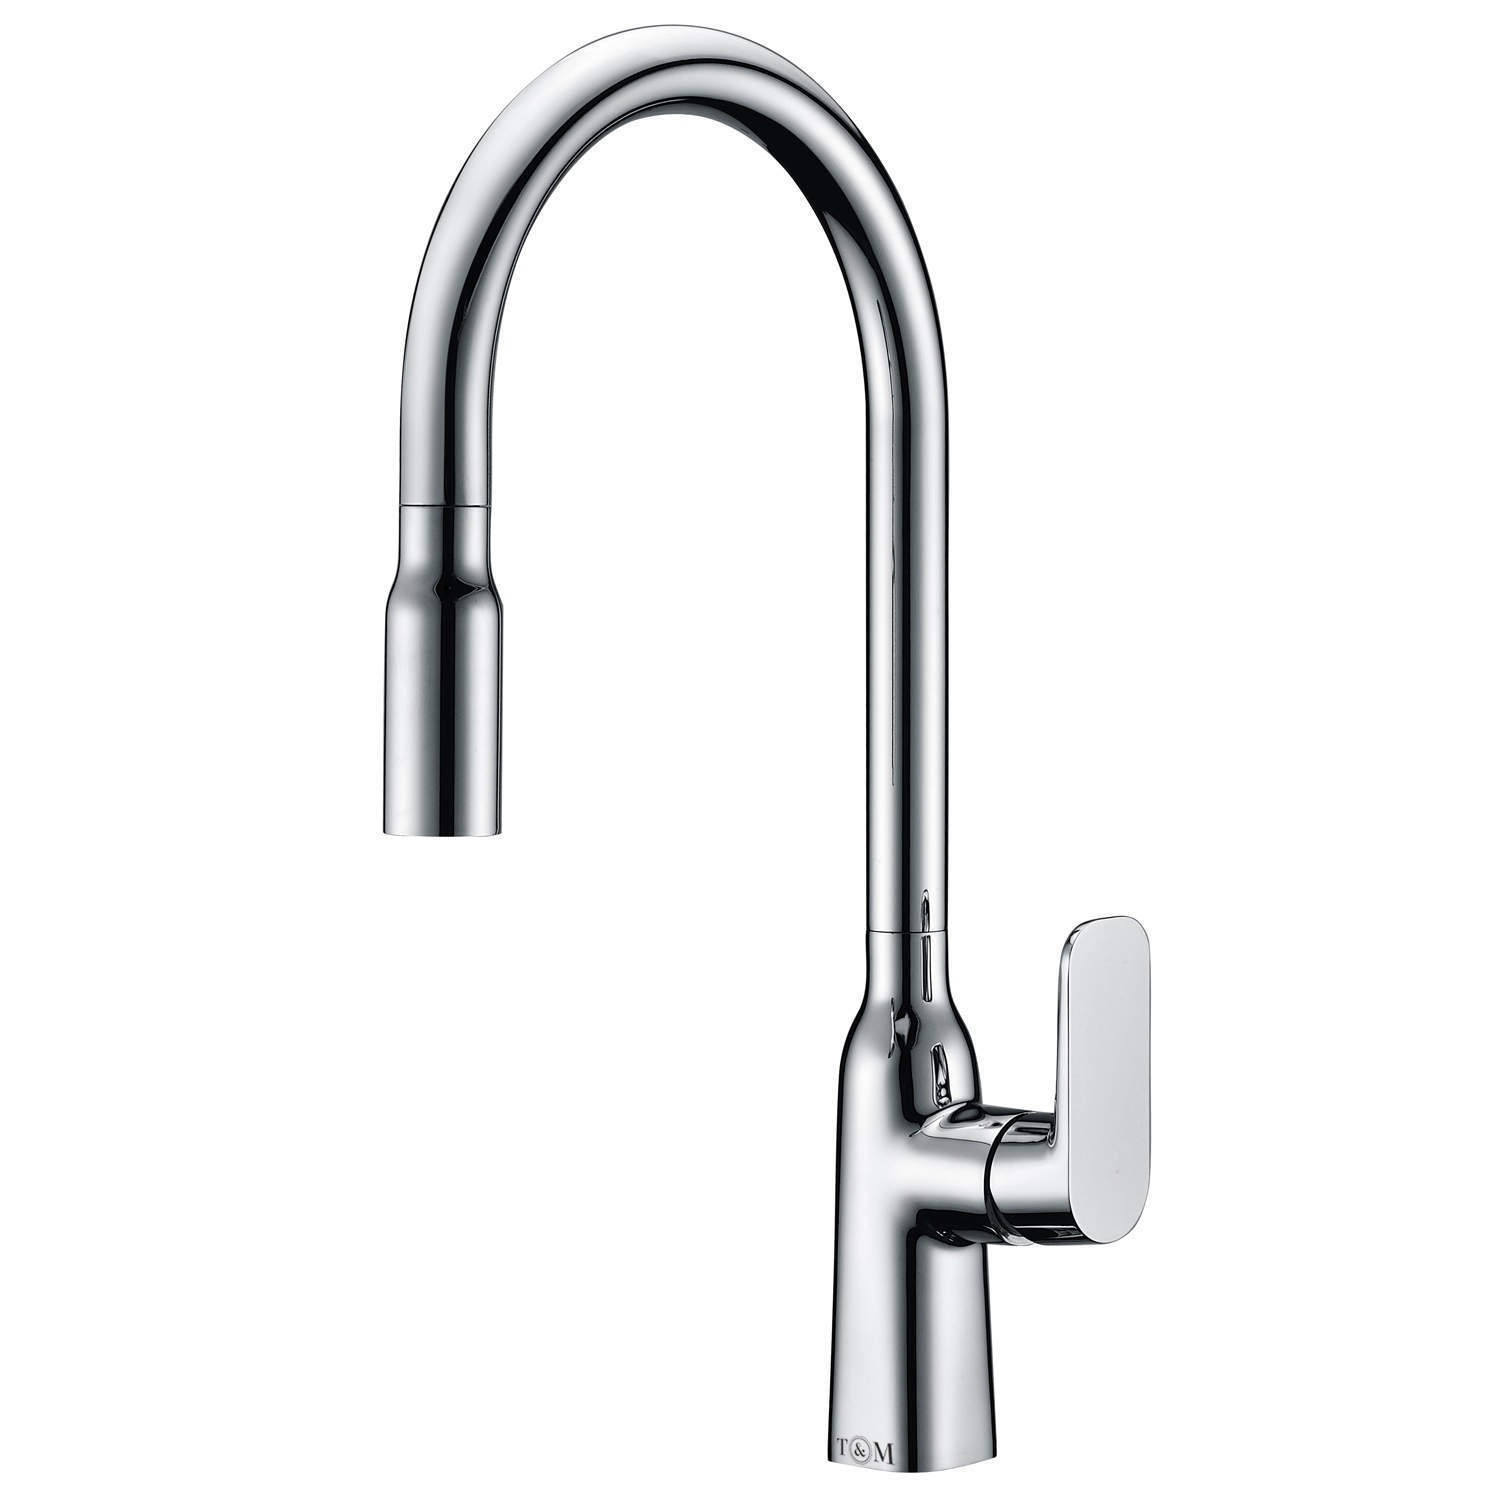 Taylor U0026amp; Moore Windermere Single Lever Chrome Monobloc Kitchen Tap With  Pull Out Nozzle Spray